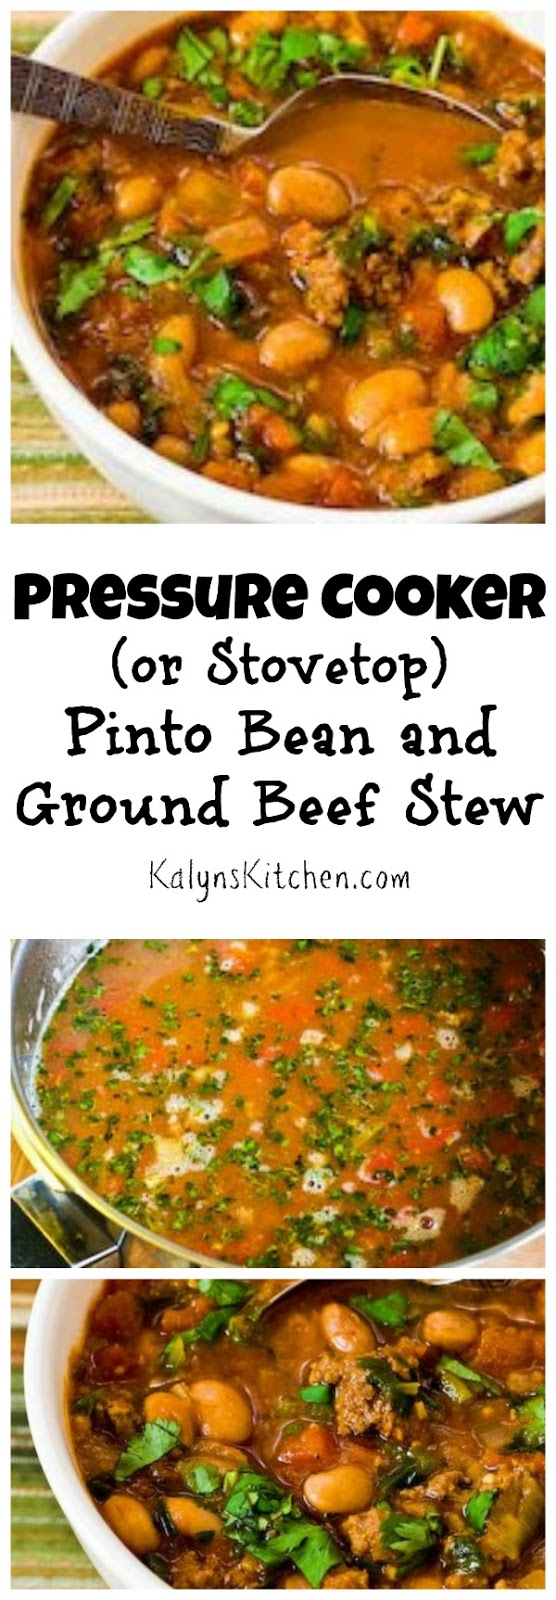 Kalyn's Kitchen®: Pressure Cooker (or Stovetop) Recipe for Pinto Bean ...